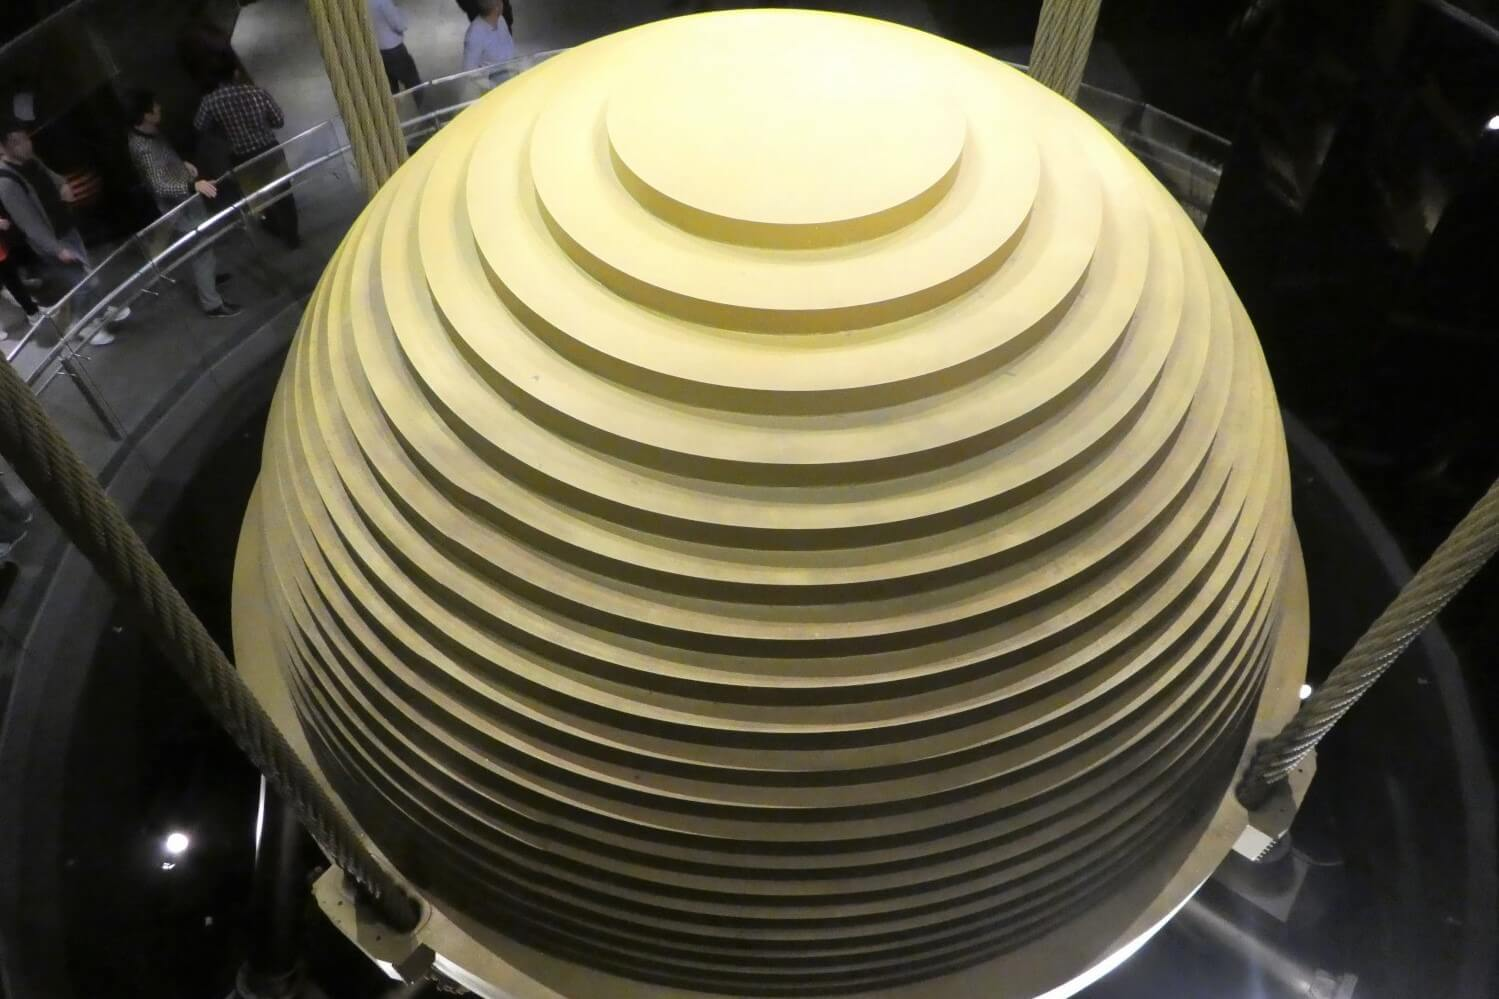 The big Tuned Mass Damper in the bamboo tower